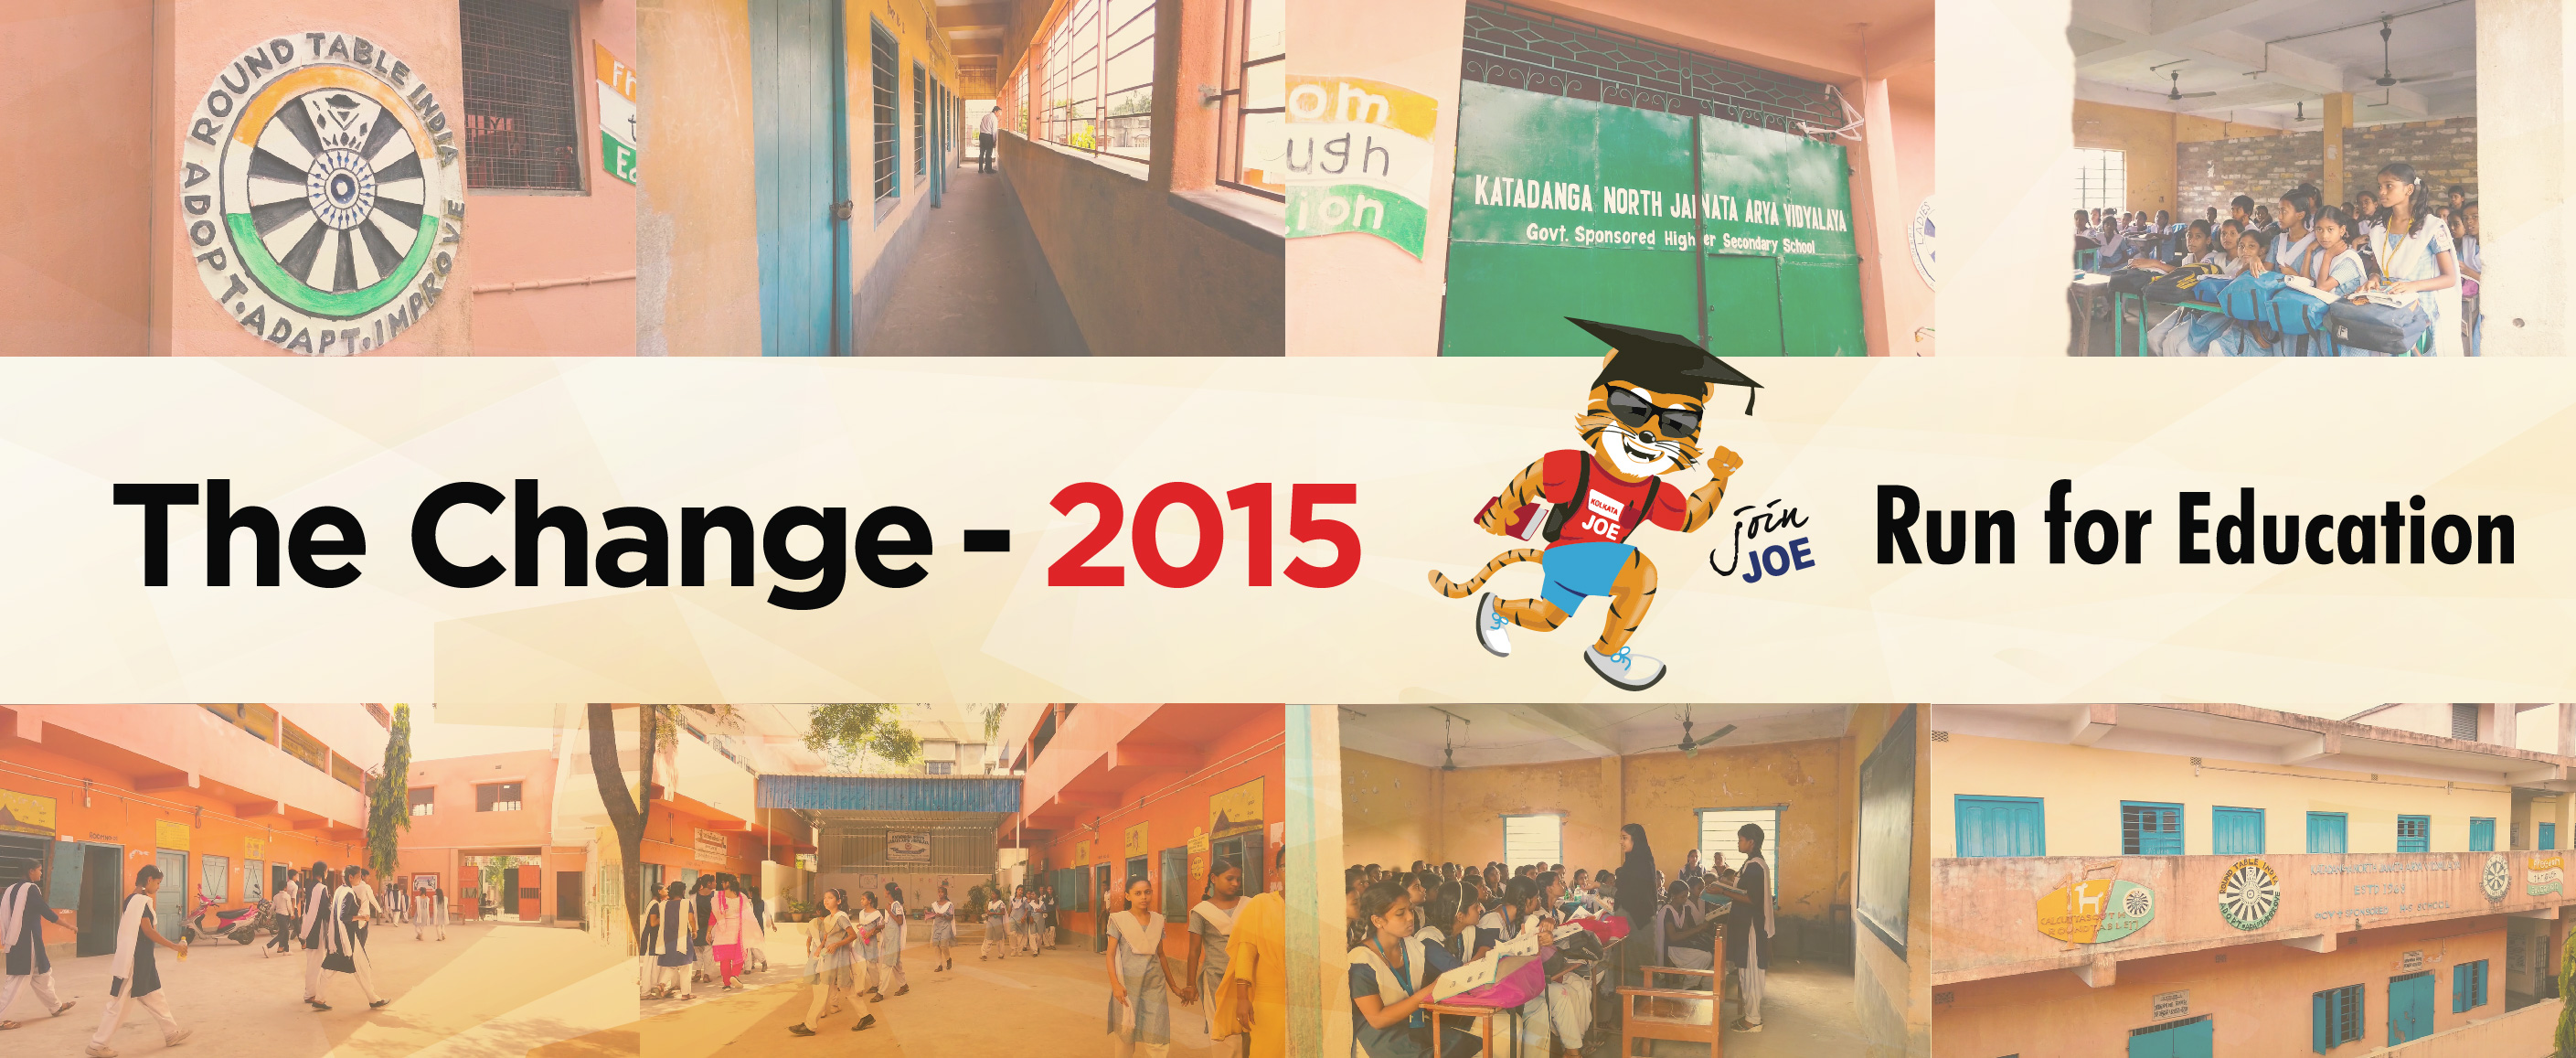 Run For Education: The Change 2015